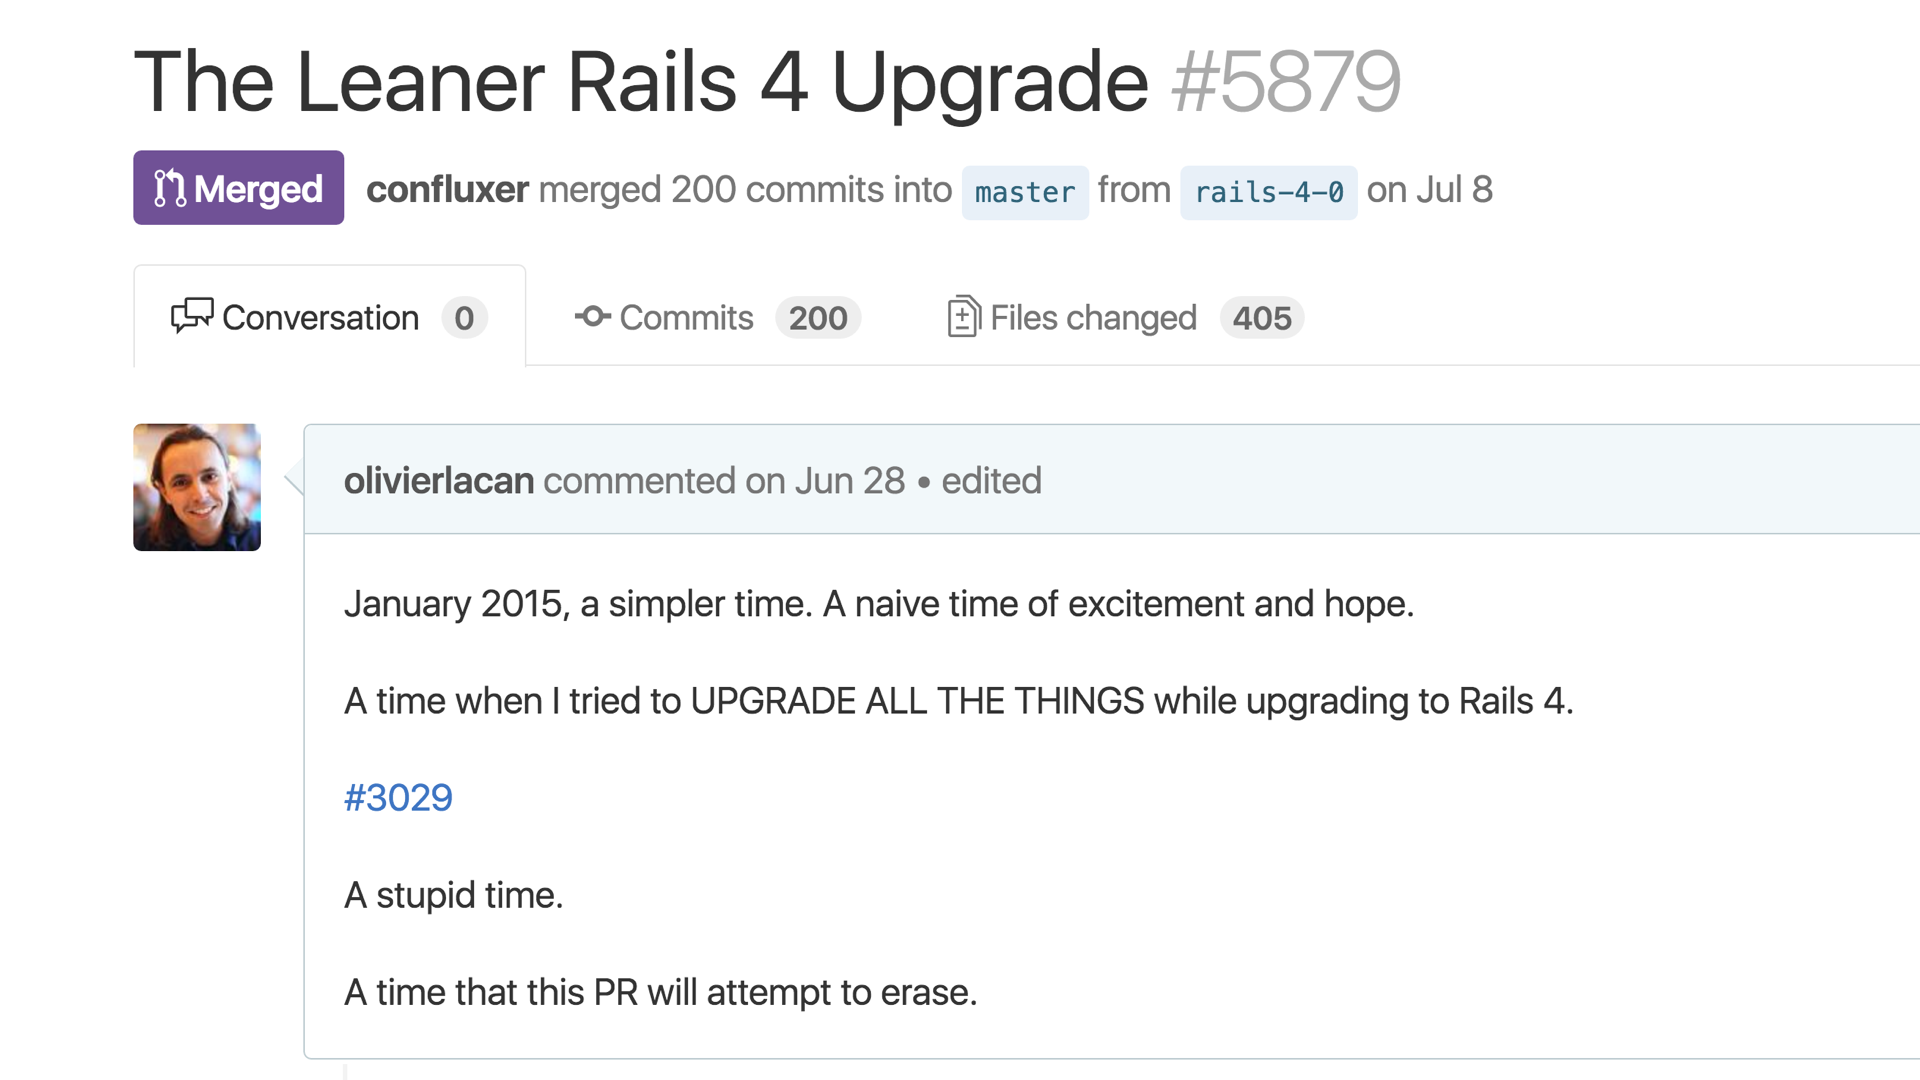 You think it only took these four pull requests I'm showing in this screenshot to upgrade to Rails 3.2 back in 2014? Ha... haaa hahahahaha. Oh boy. If only.